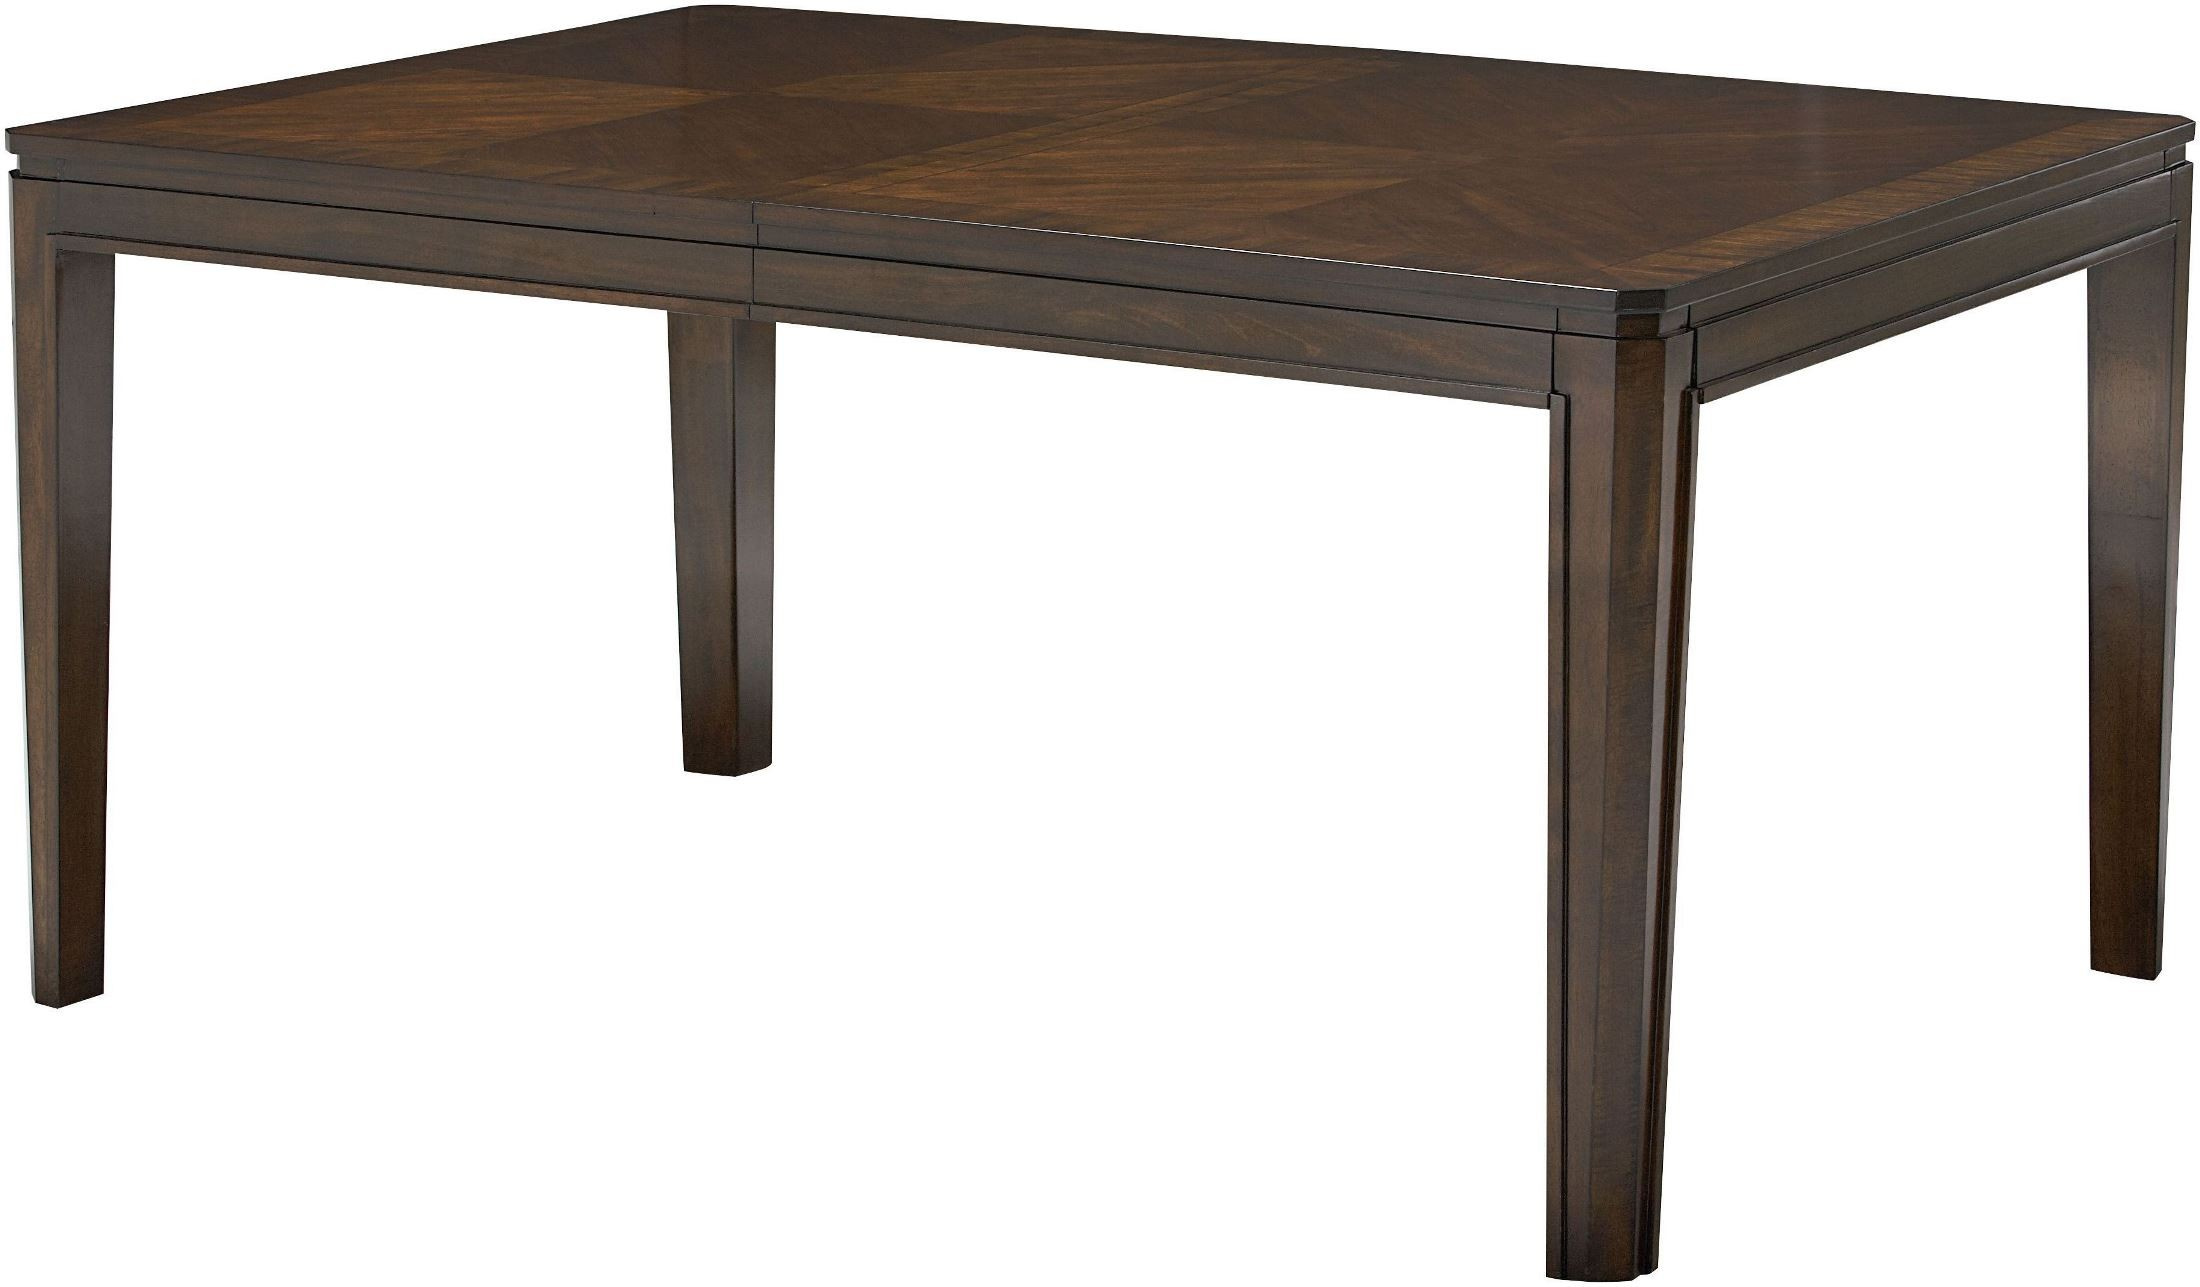 Avion walnut extendable leg dining table from standard for One leg dining table